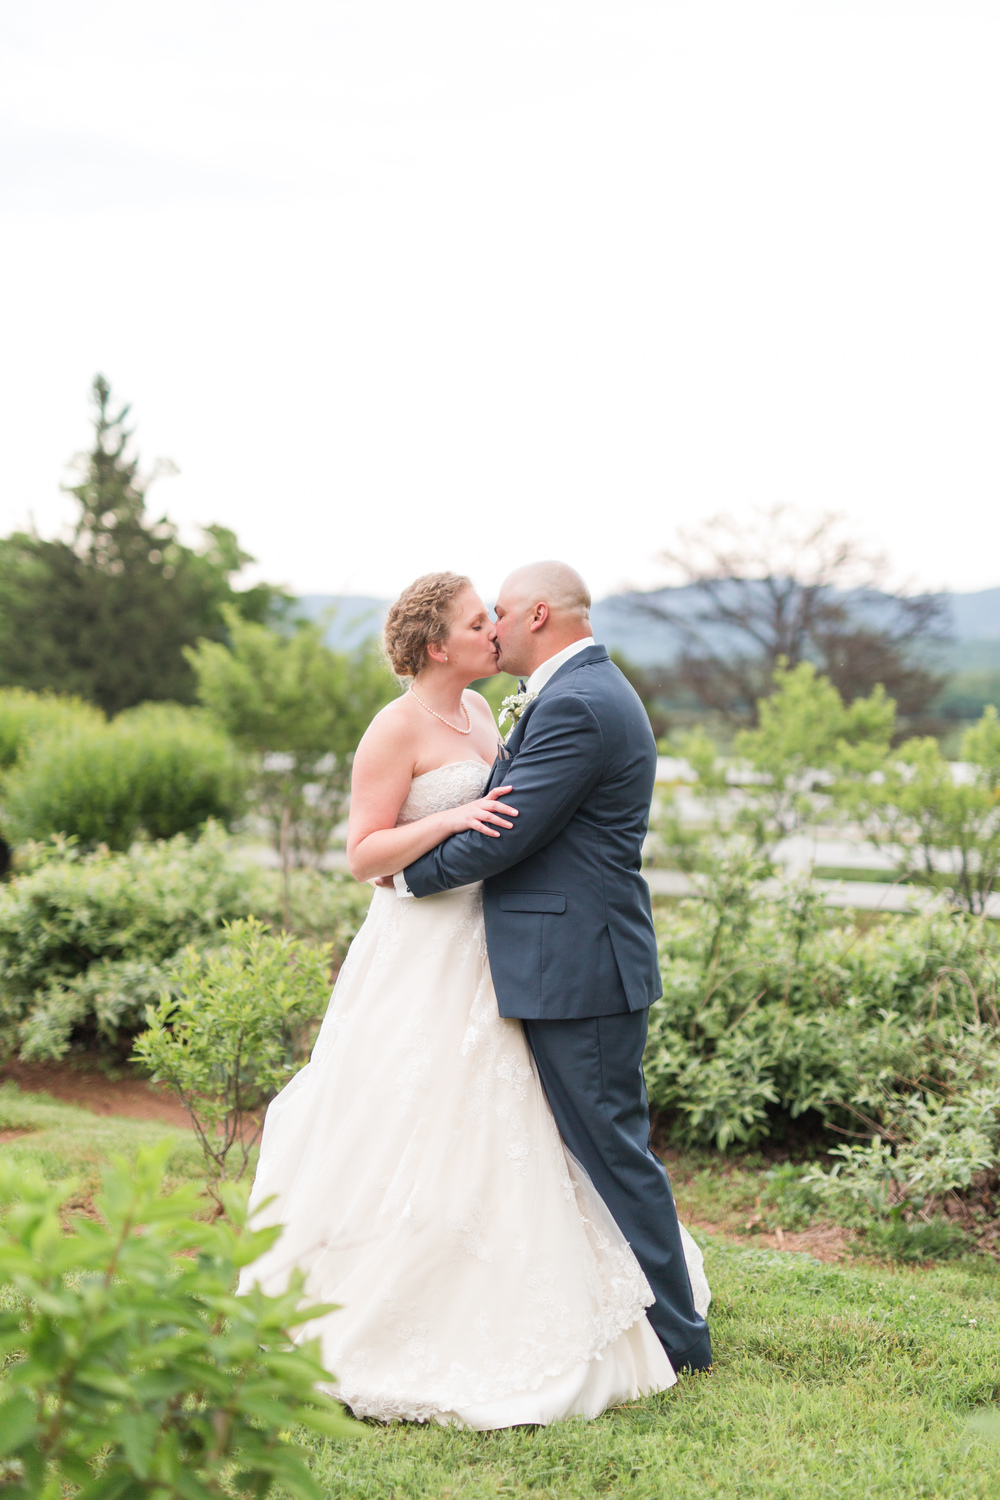 Lynchburg Wedding Photographer || Charlottesville Wedding Photographer || Ashley Eiban Photography || www.ashleyeiban.com